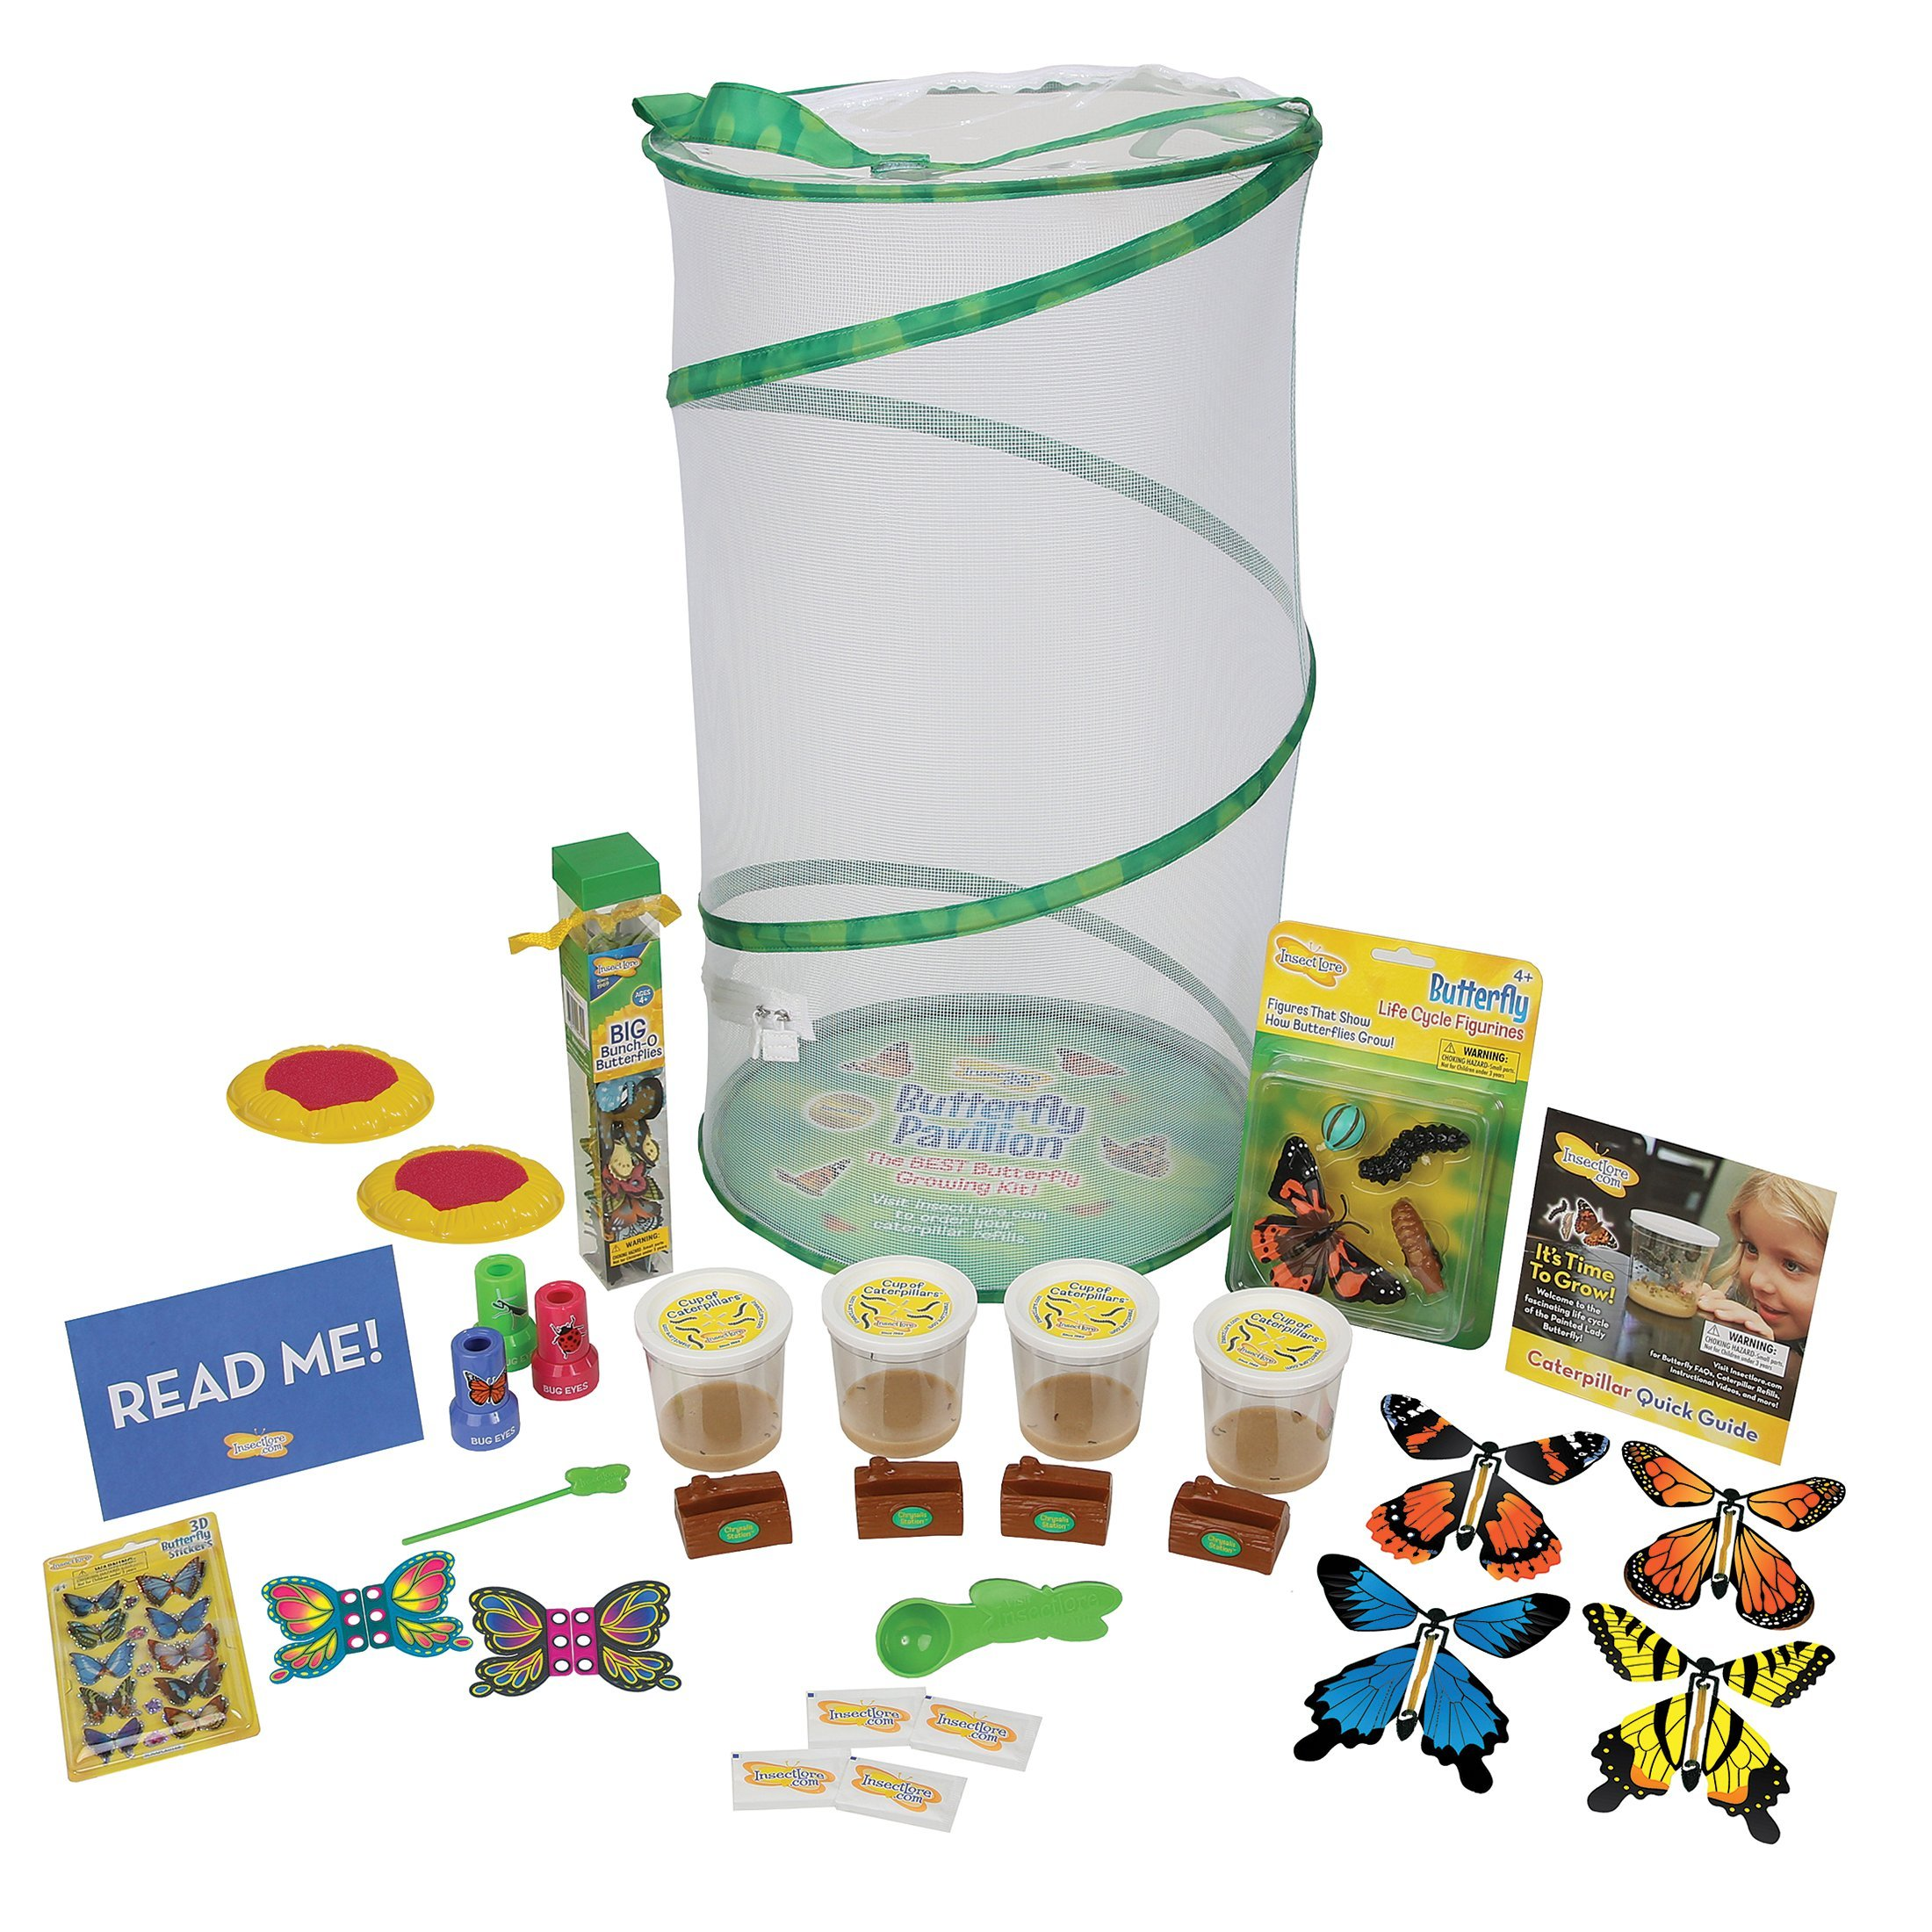 Insect Lore Platinum Edition Butterfly Pavilion Kit